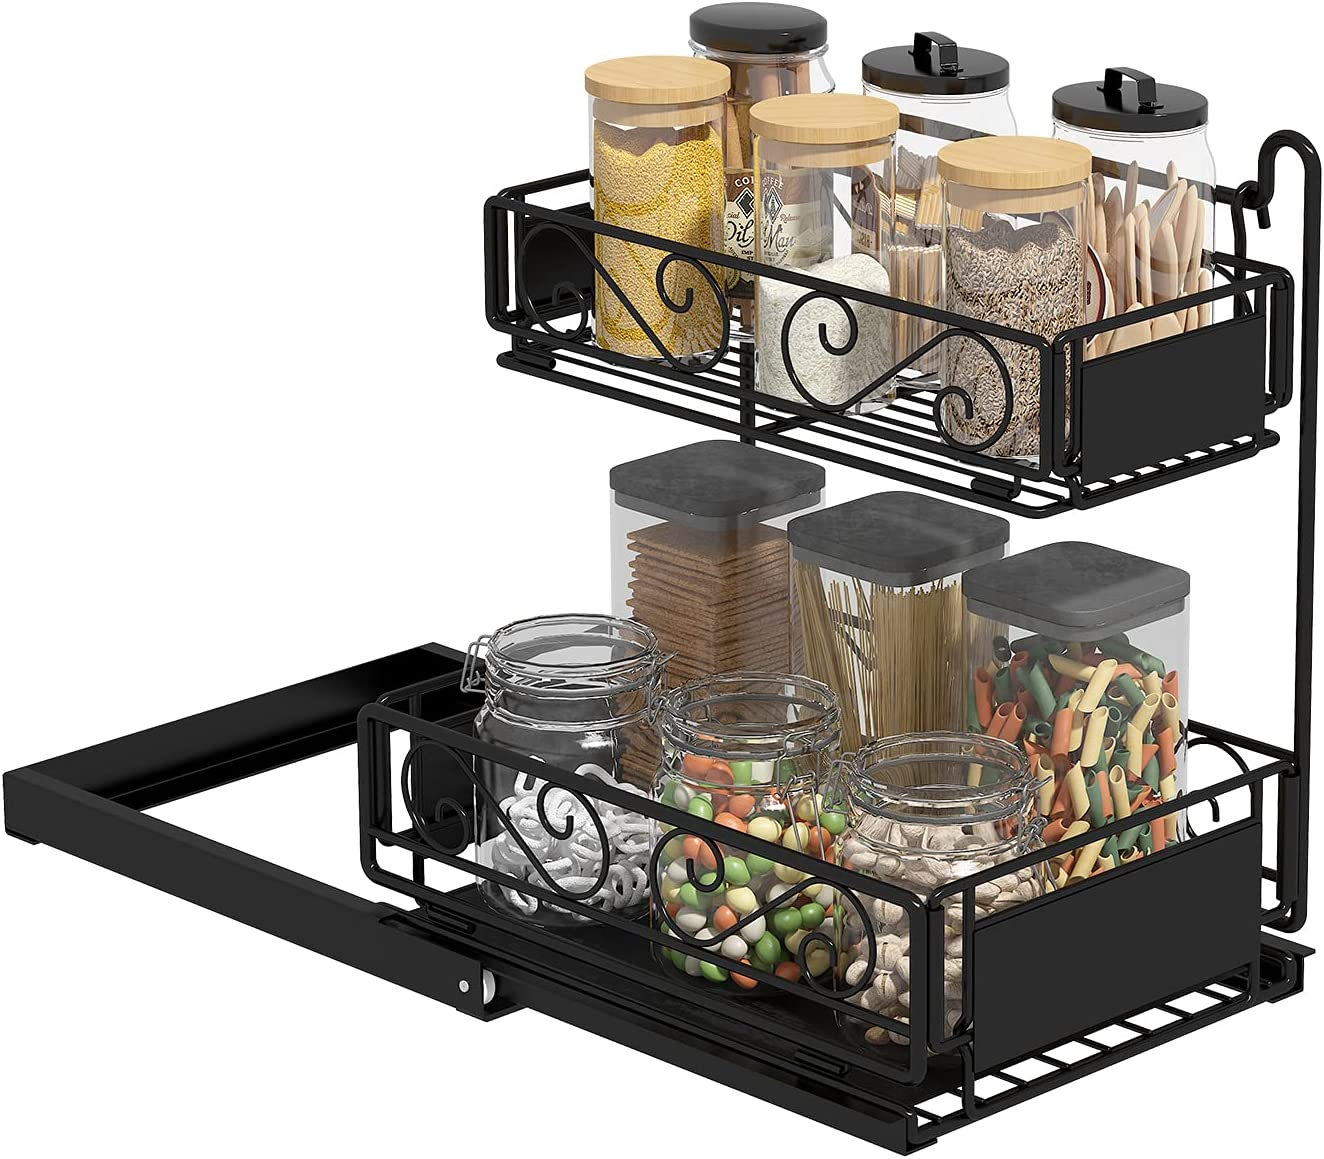 Purchase Apsan Pull Out Cabinet Organizer Tier Drawers Shelv 2 Slide Now free shipping